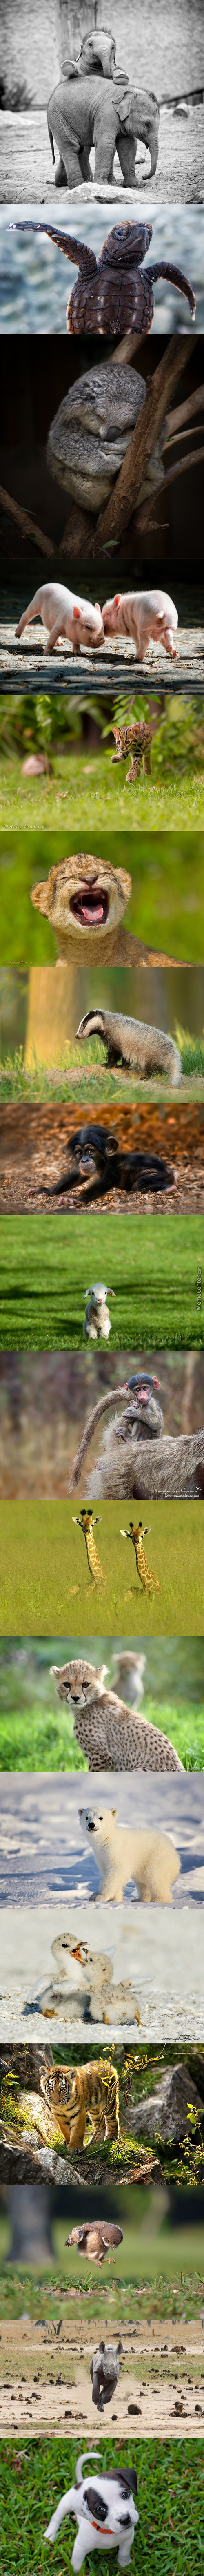 Cutest Baby Animals In The Wild! (Except Last One)